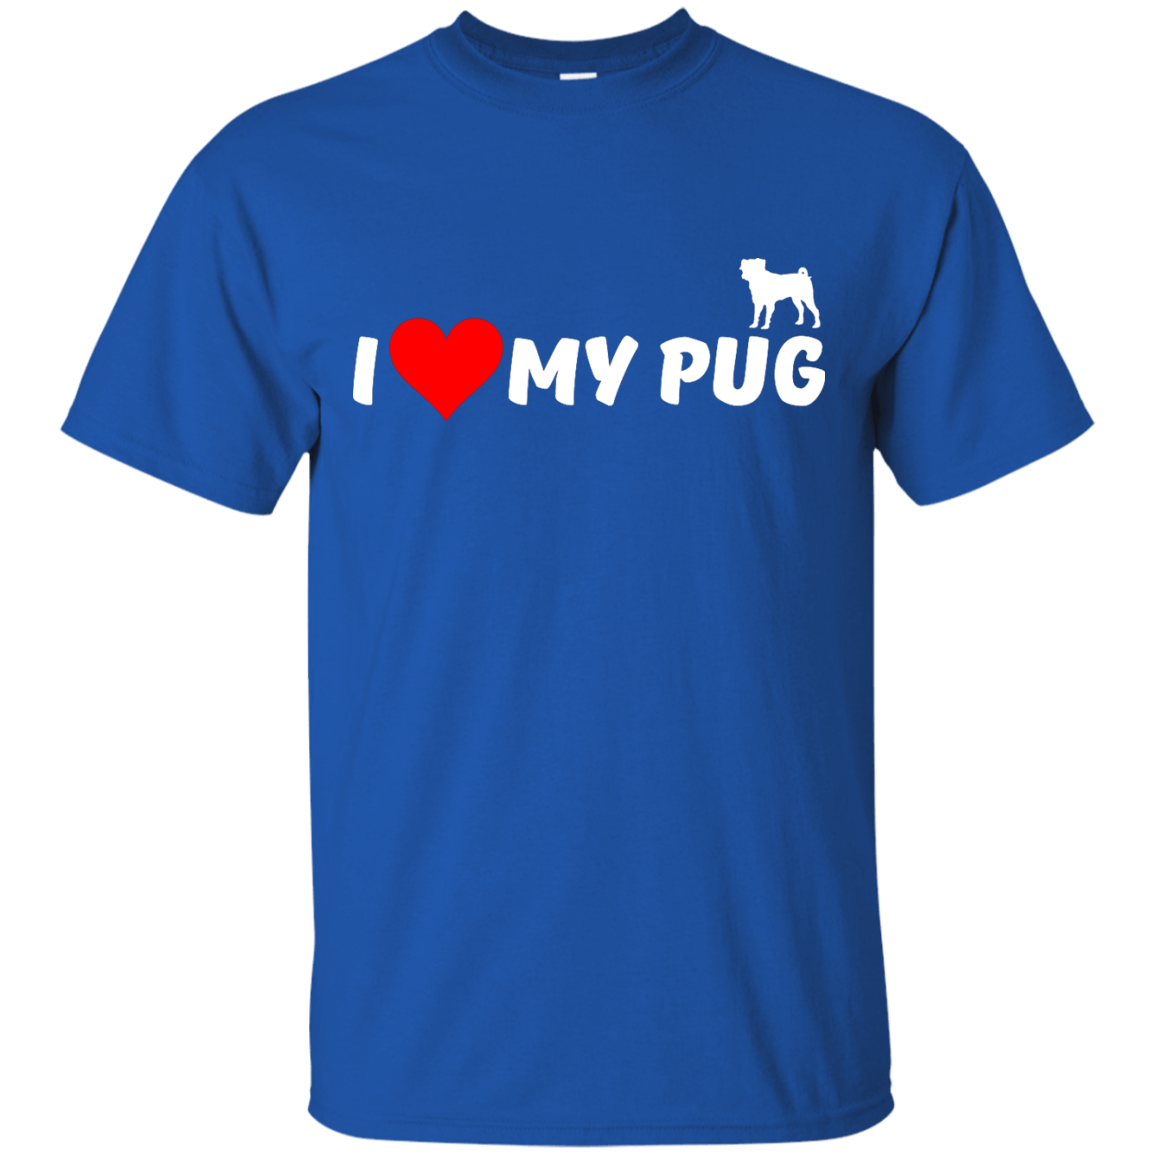 I Love My Pug themed T-Shirts and Hoodies for Men and Women